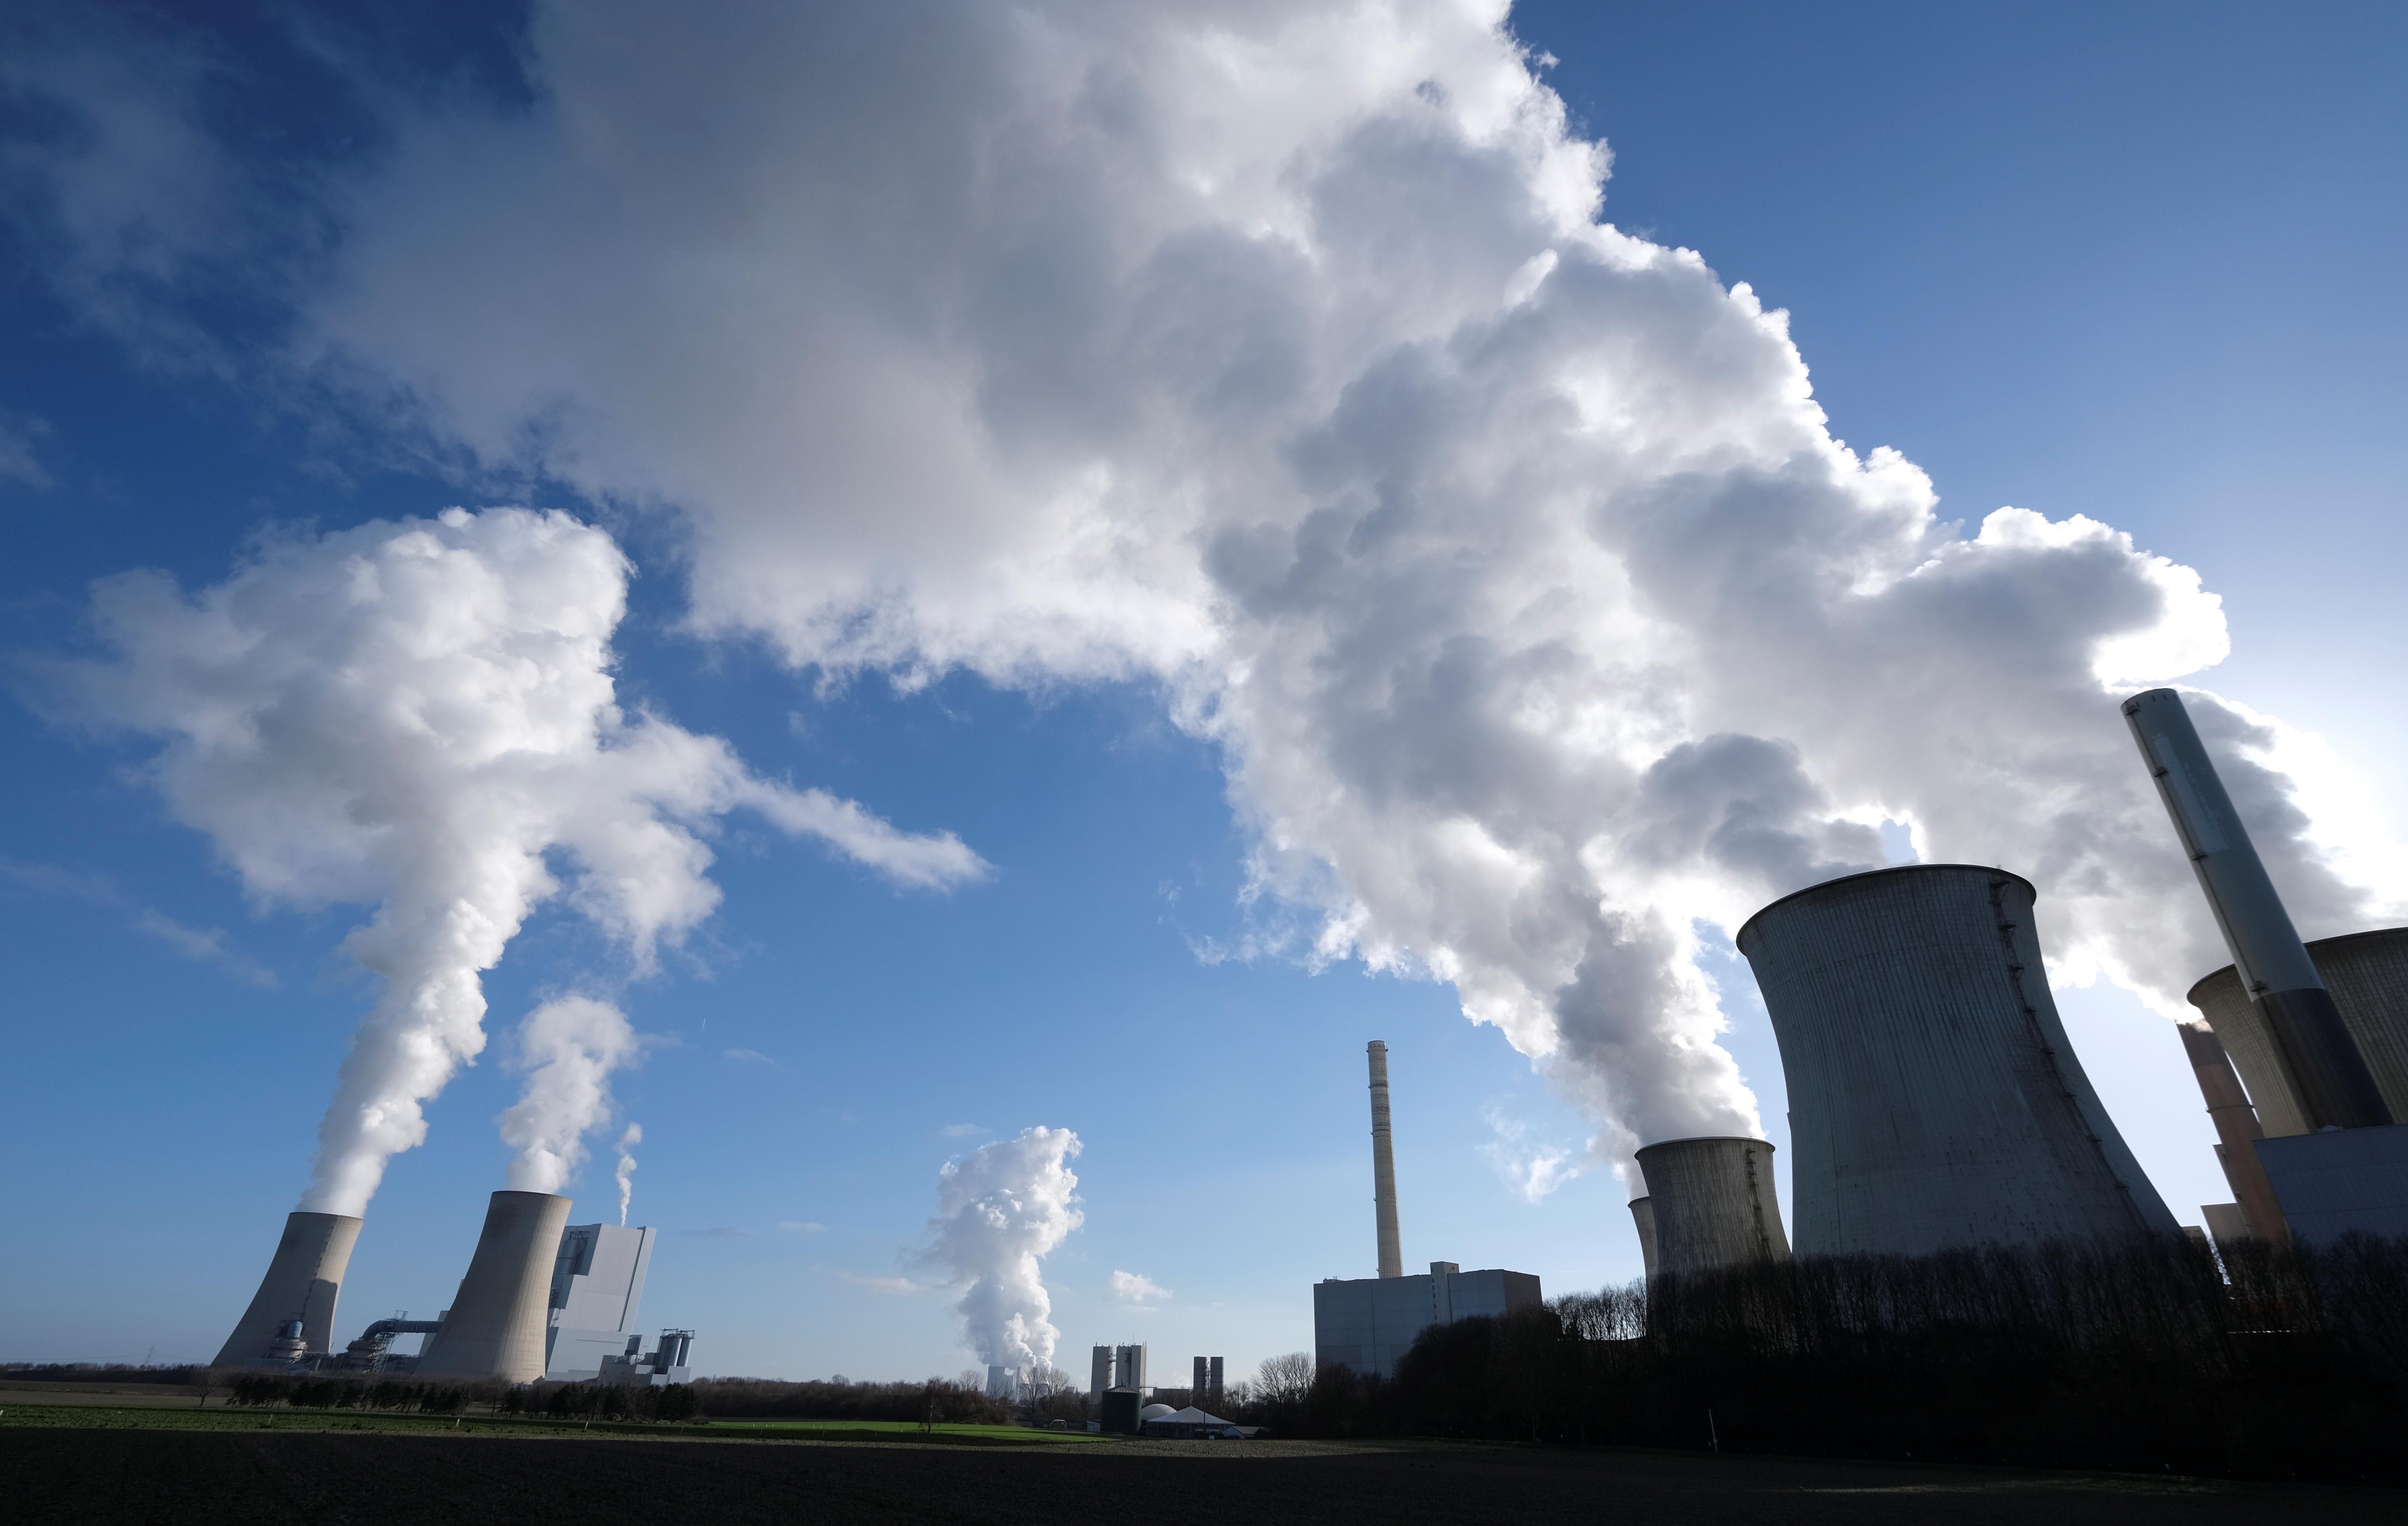 The lignite power plants of